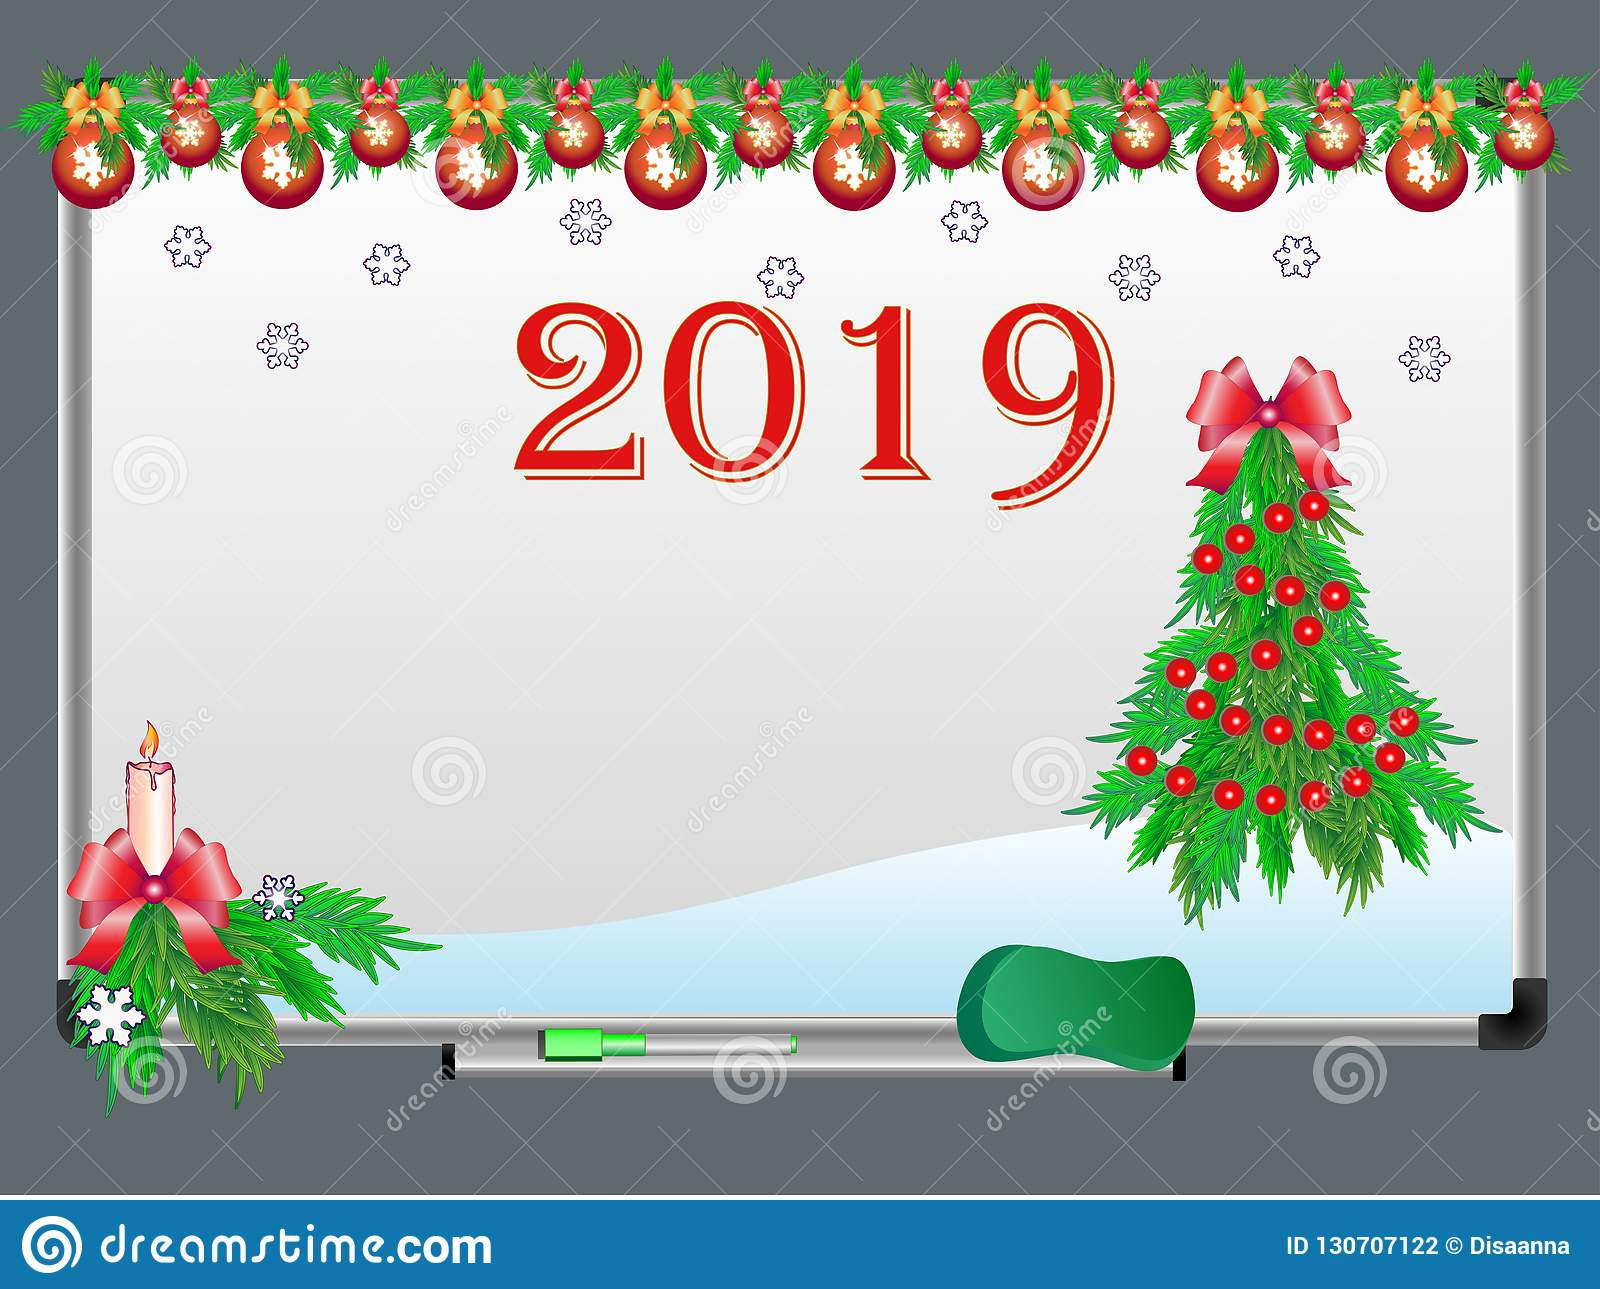 White Board With Christmas And New Year Decorations And The